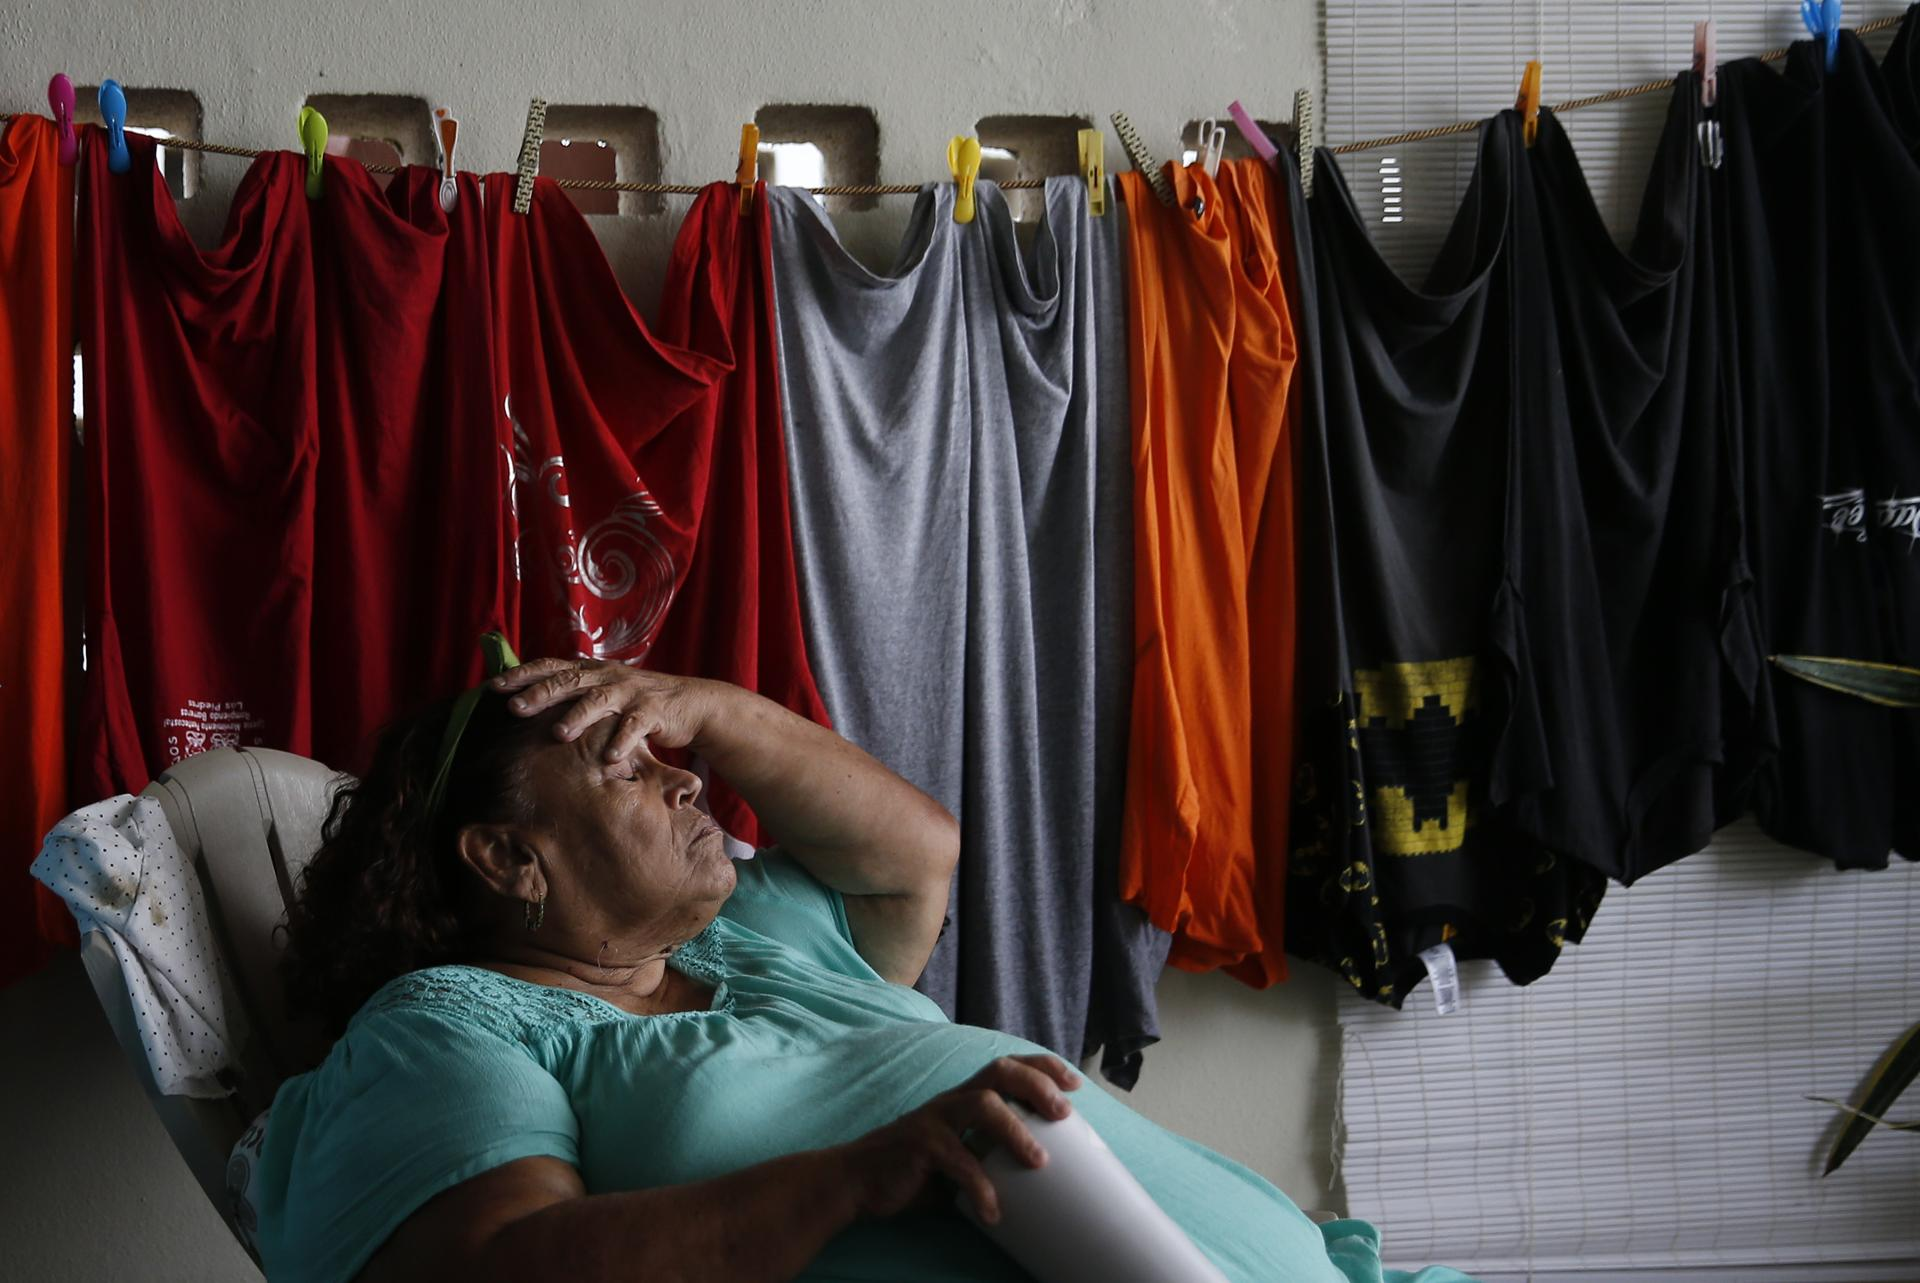 Carmen Charriez, 71, has slept in this chair in her garage since Hurricane Maria hit and severely damaged her home.